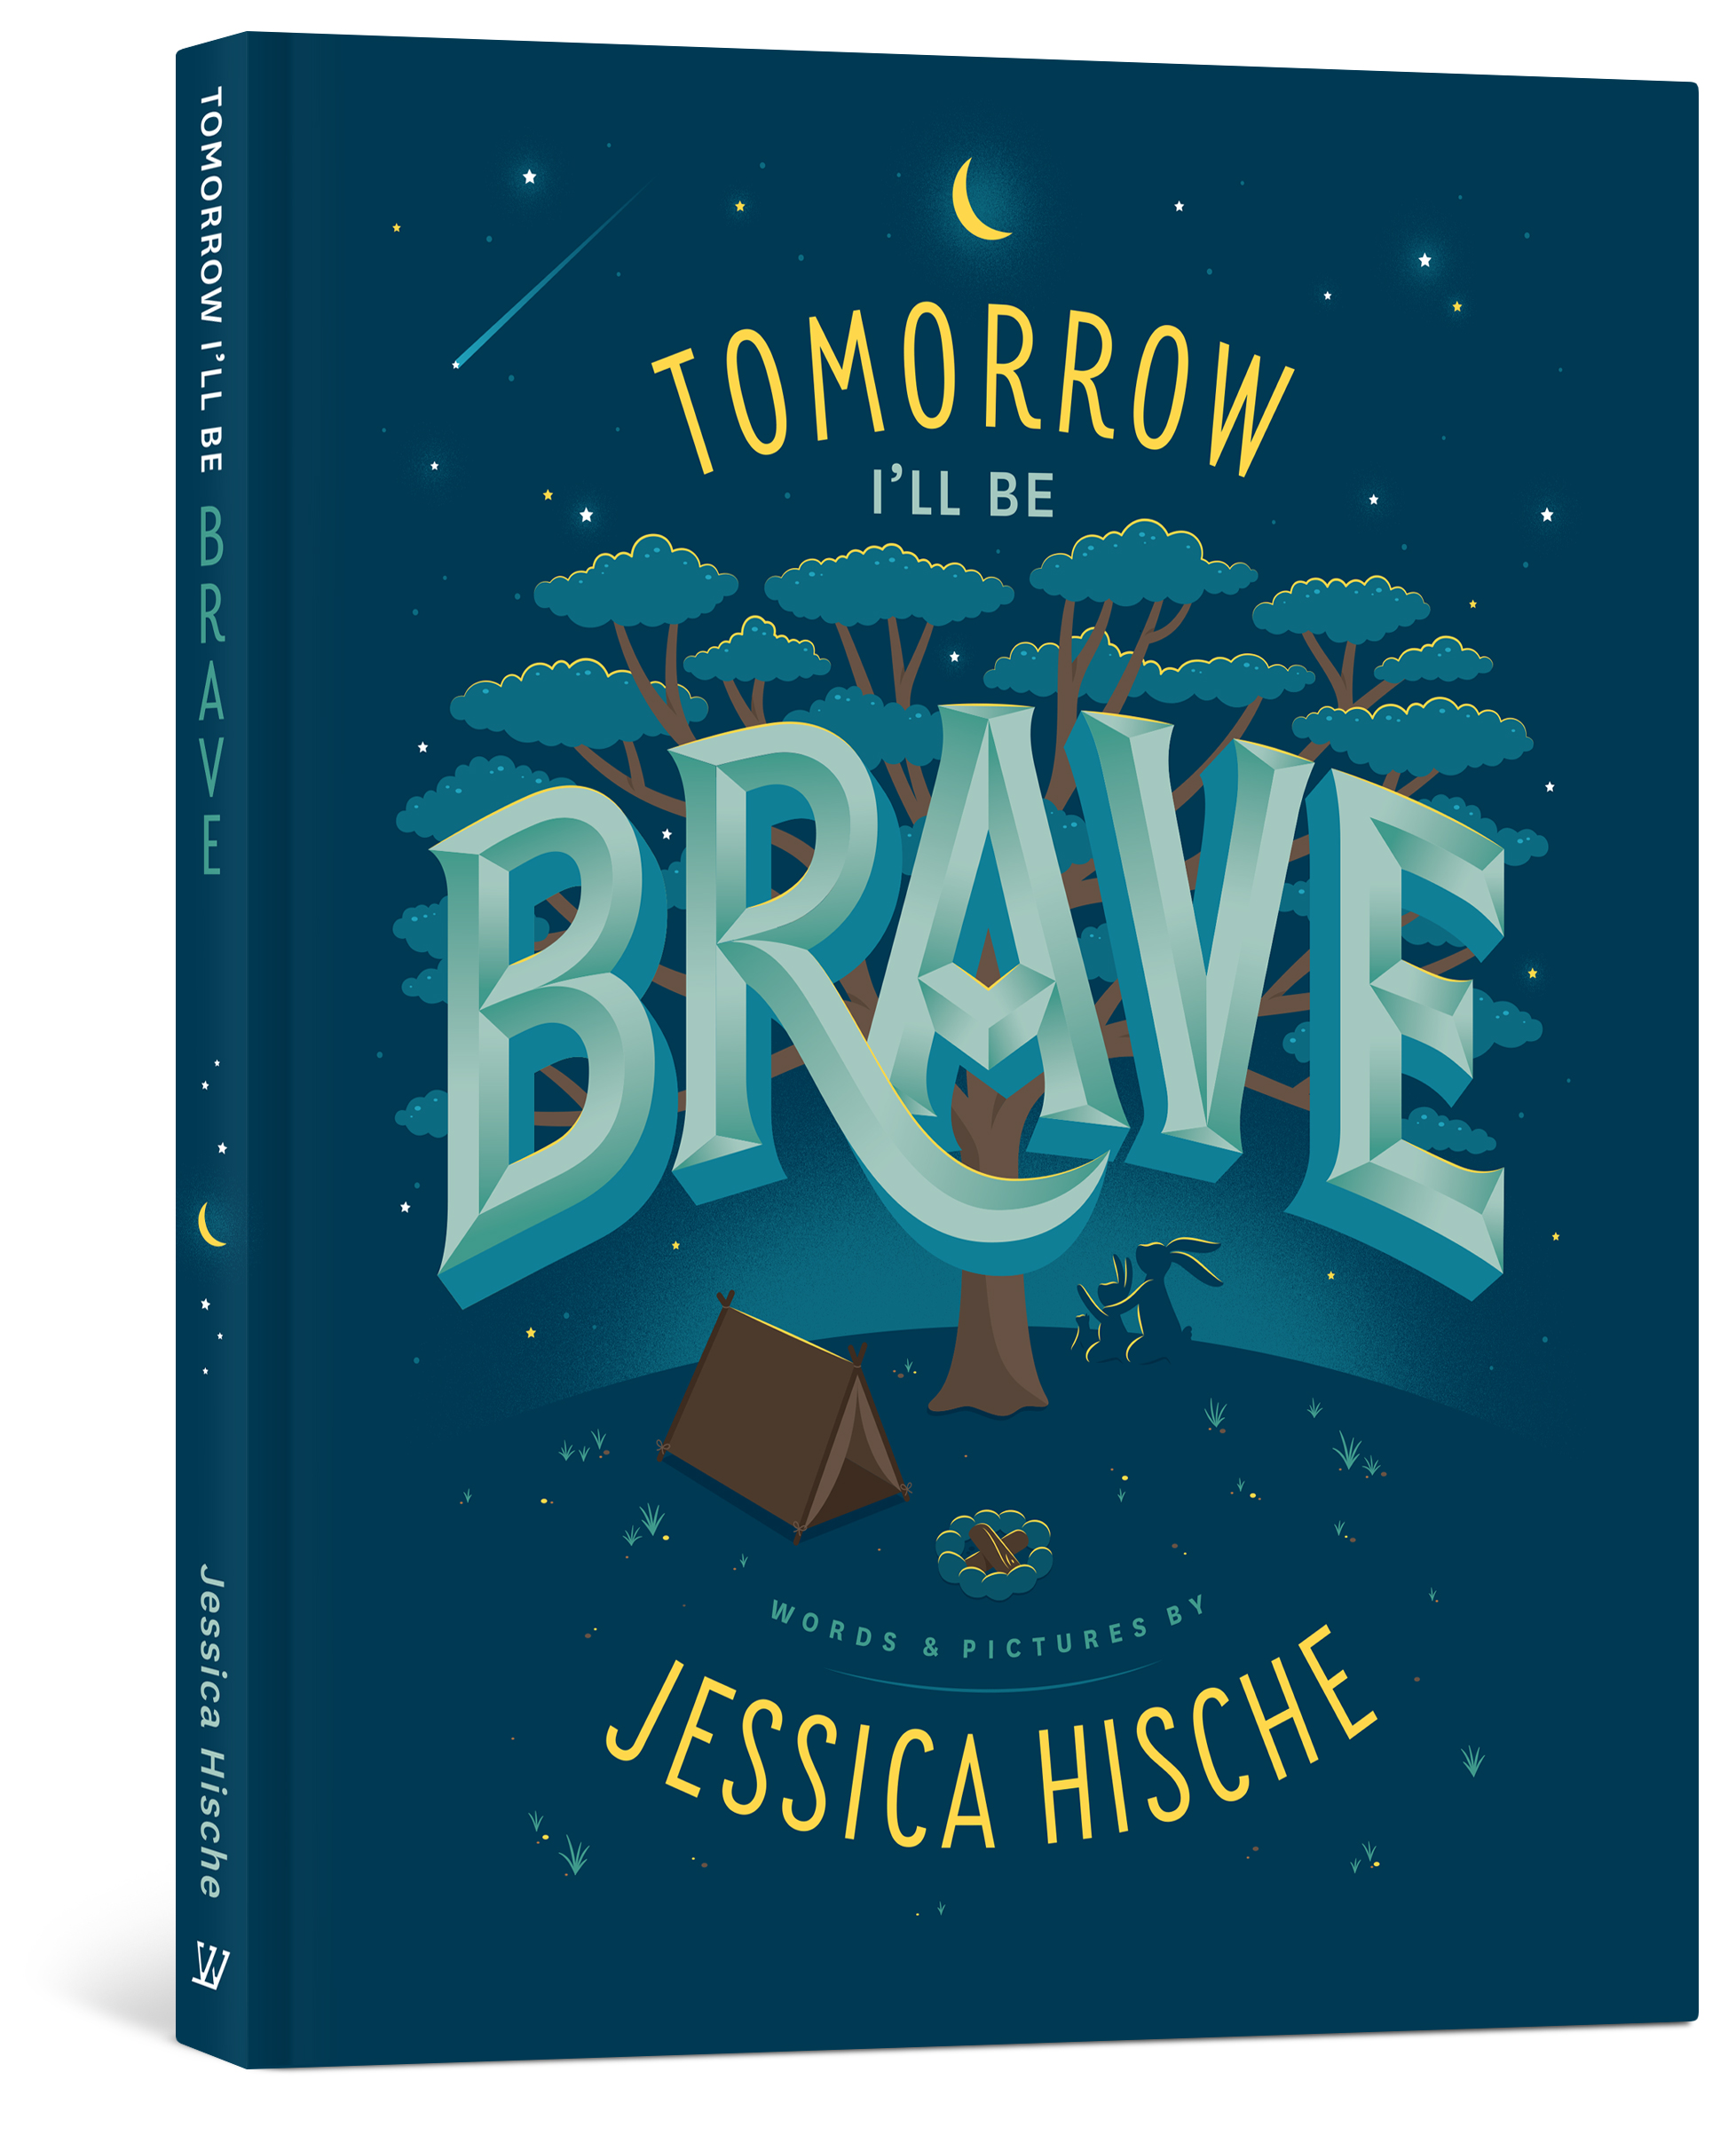 Book Cover Art Images : Jessica hische home